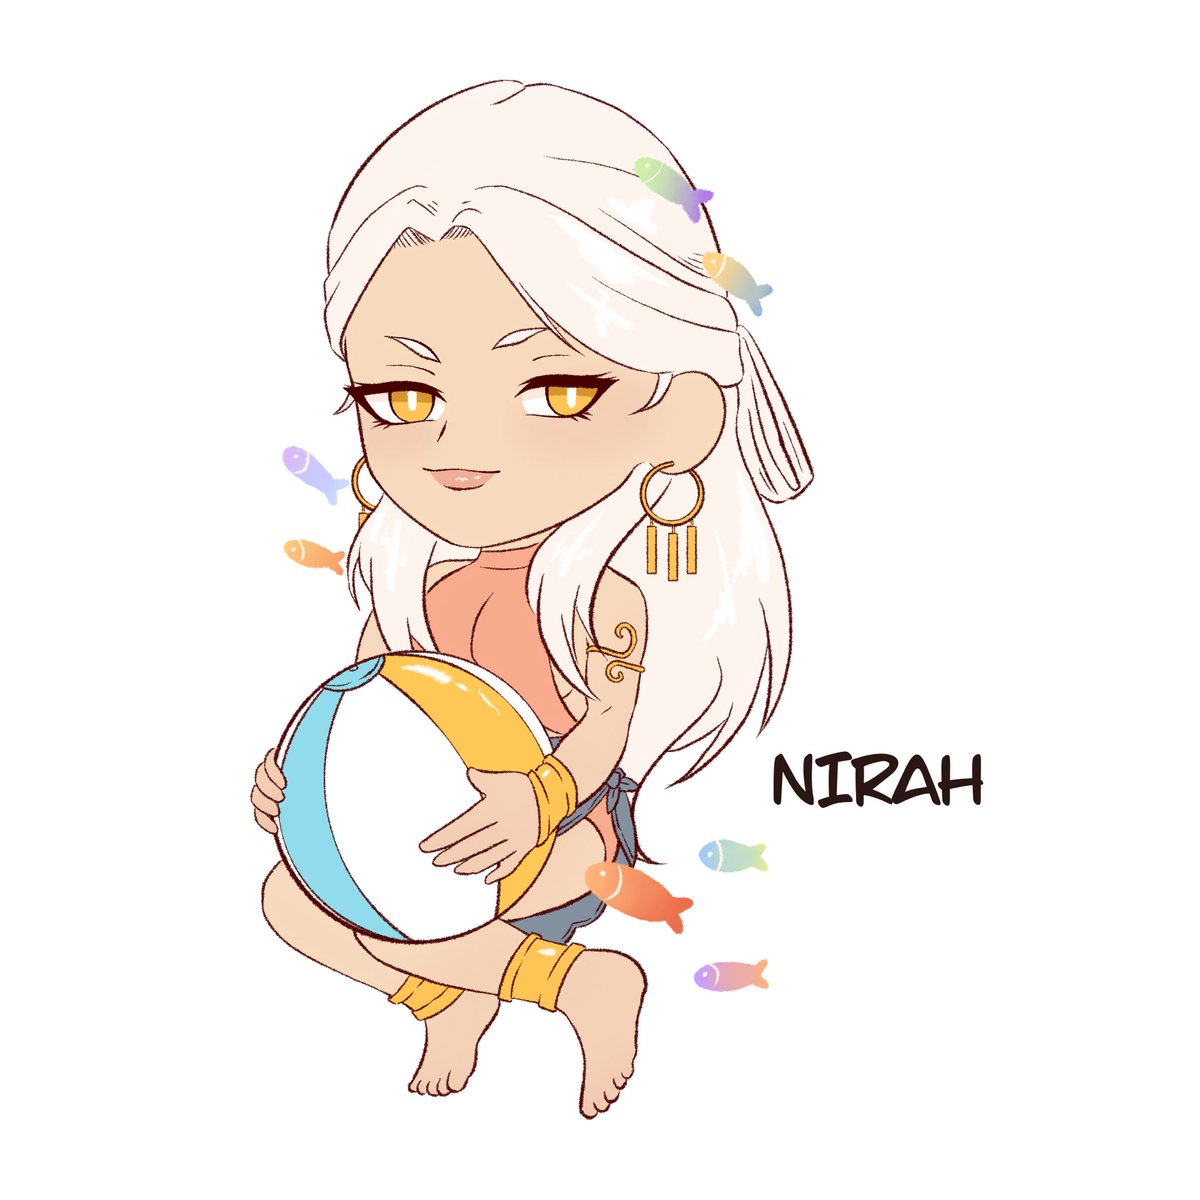 Nirah's Summer Tale Charm!! This style is so cute!!!! This was so hard though because I'm not used to drawing chibi style —- Please don't edit or repost without permission, thanks! #thearcanagame #thearcanamc #thearcanasummertalepic.twitter.com/lvRx6UCQ0S